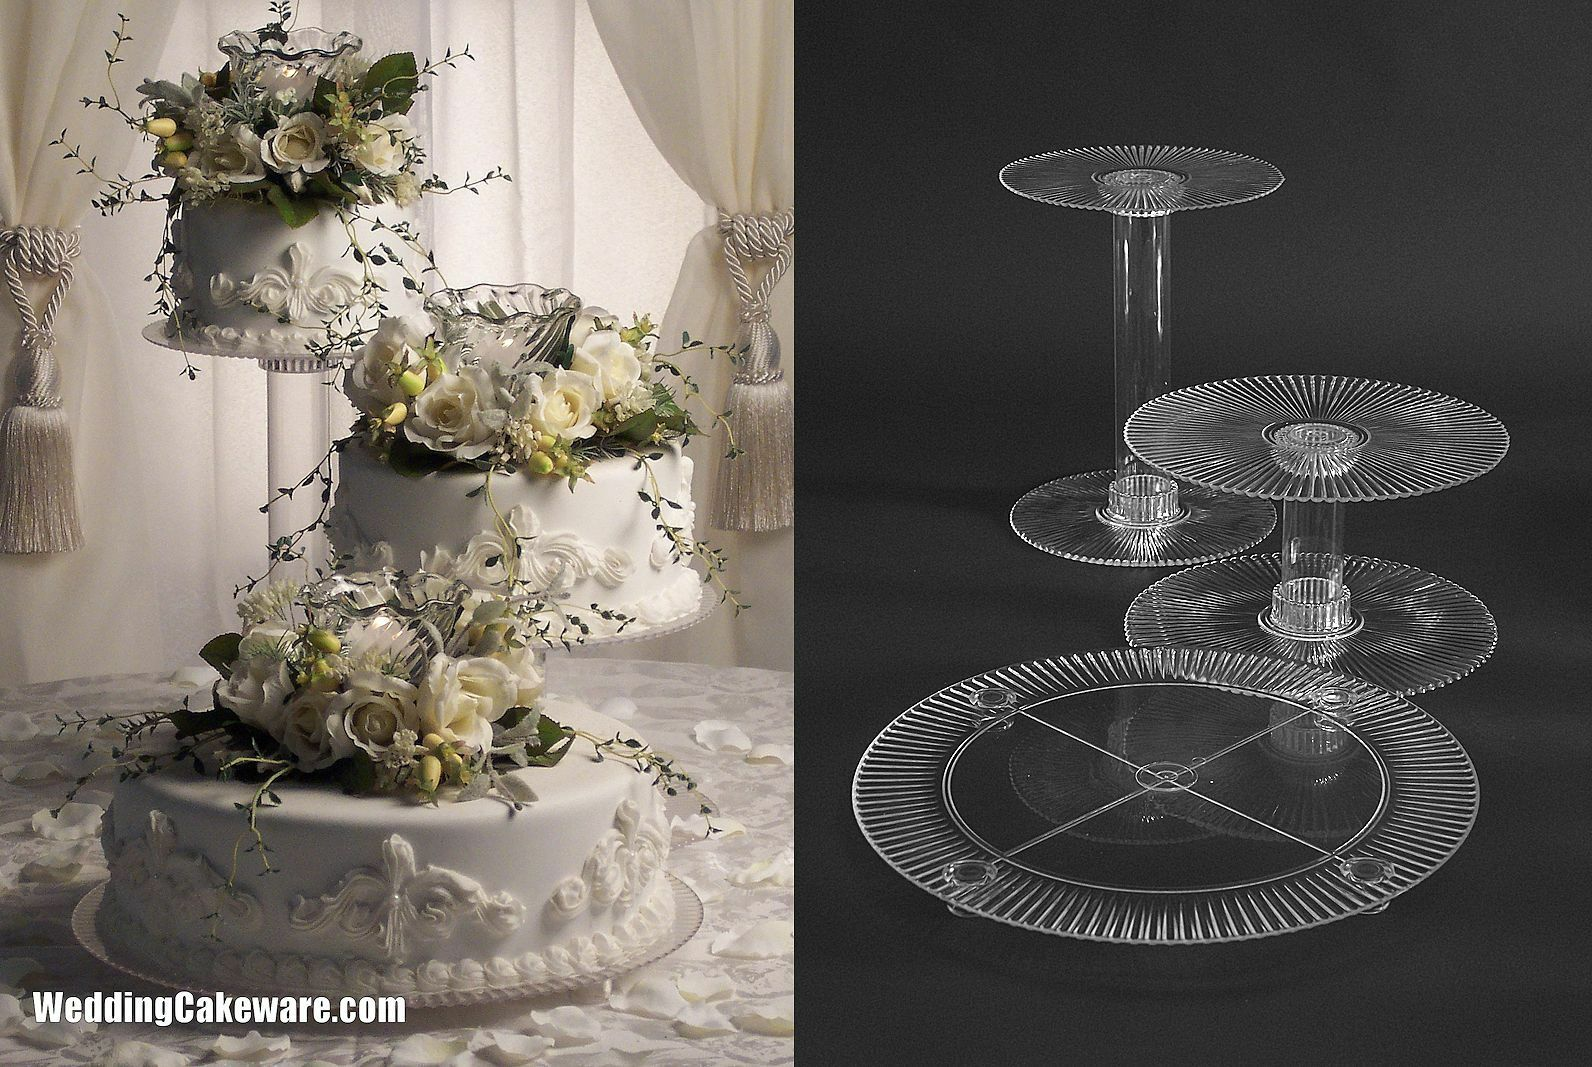 Artis Wedding Cake : 3 Tier Wedding Cake Stands Foto Artis - Candydoll